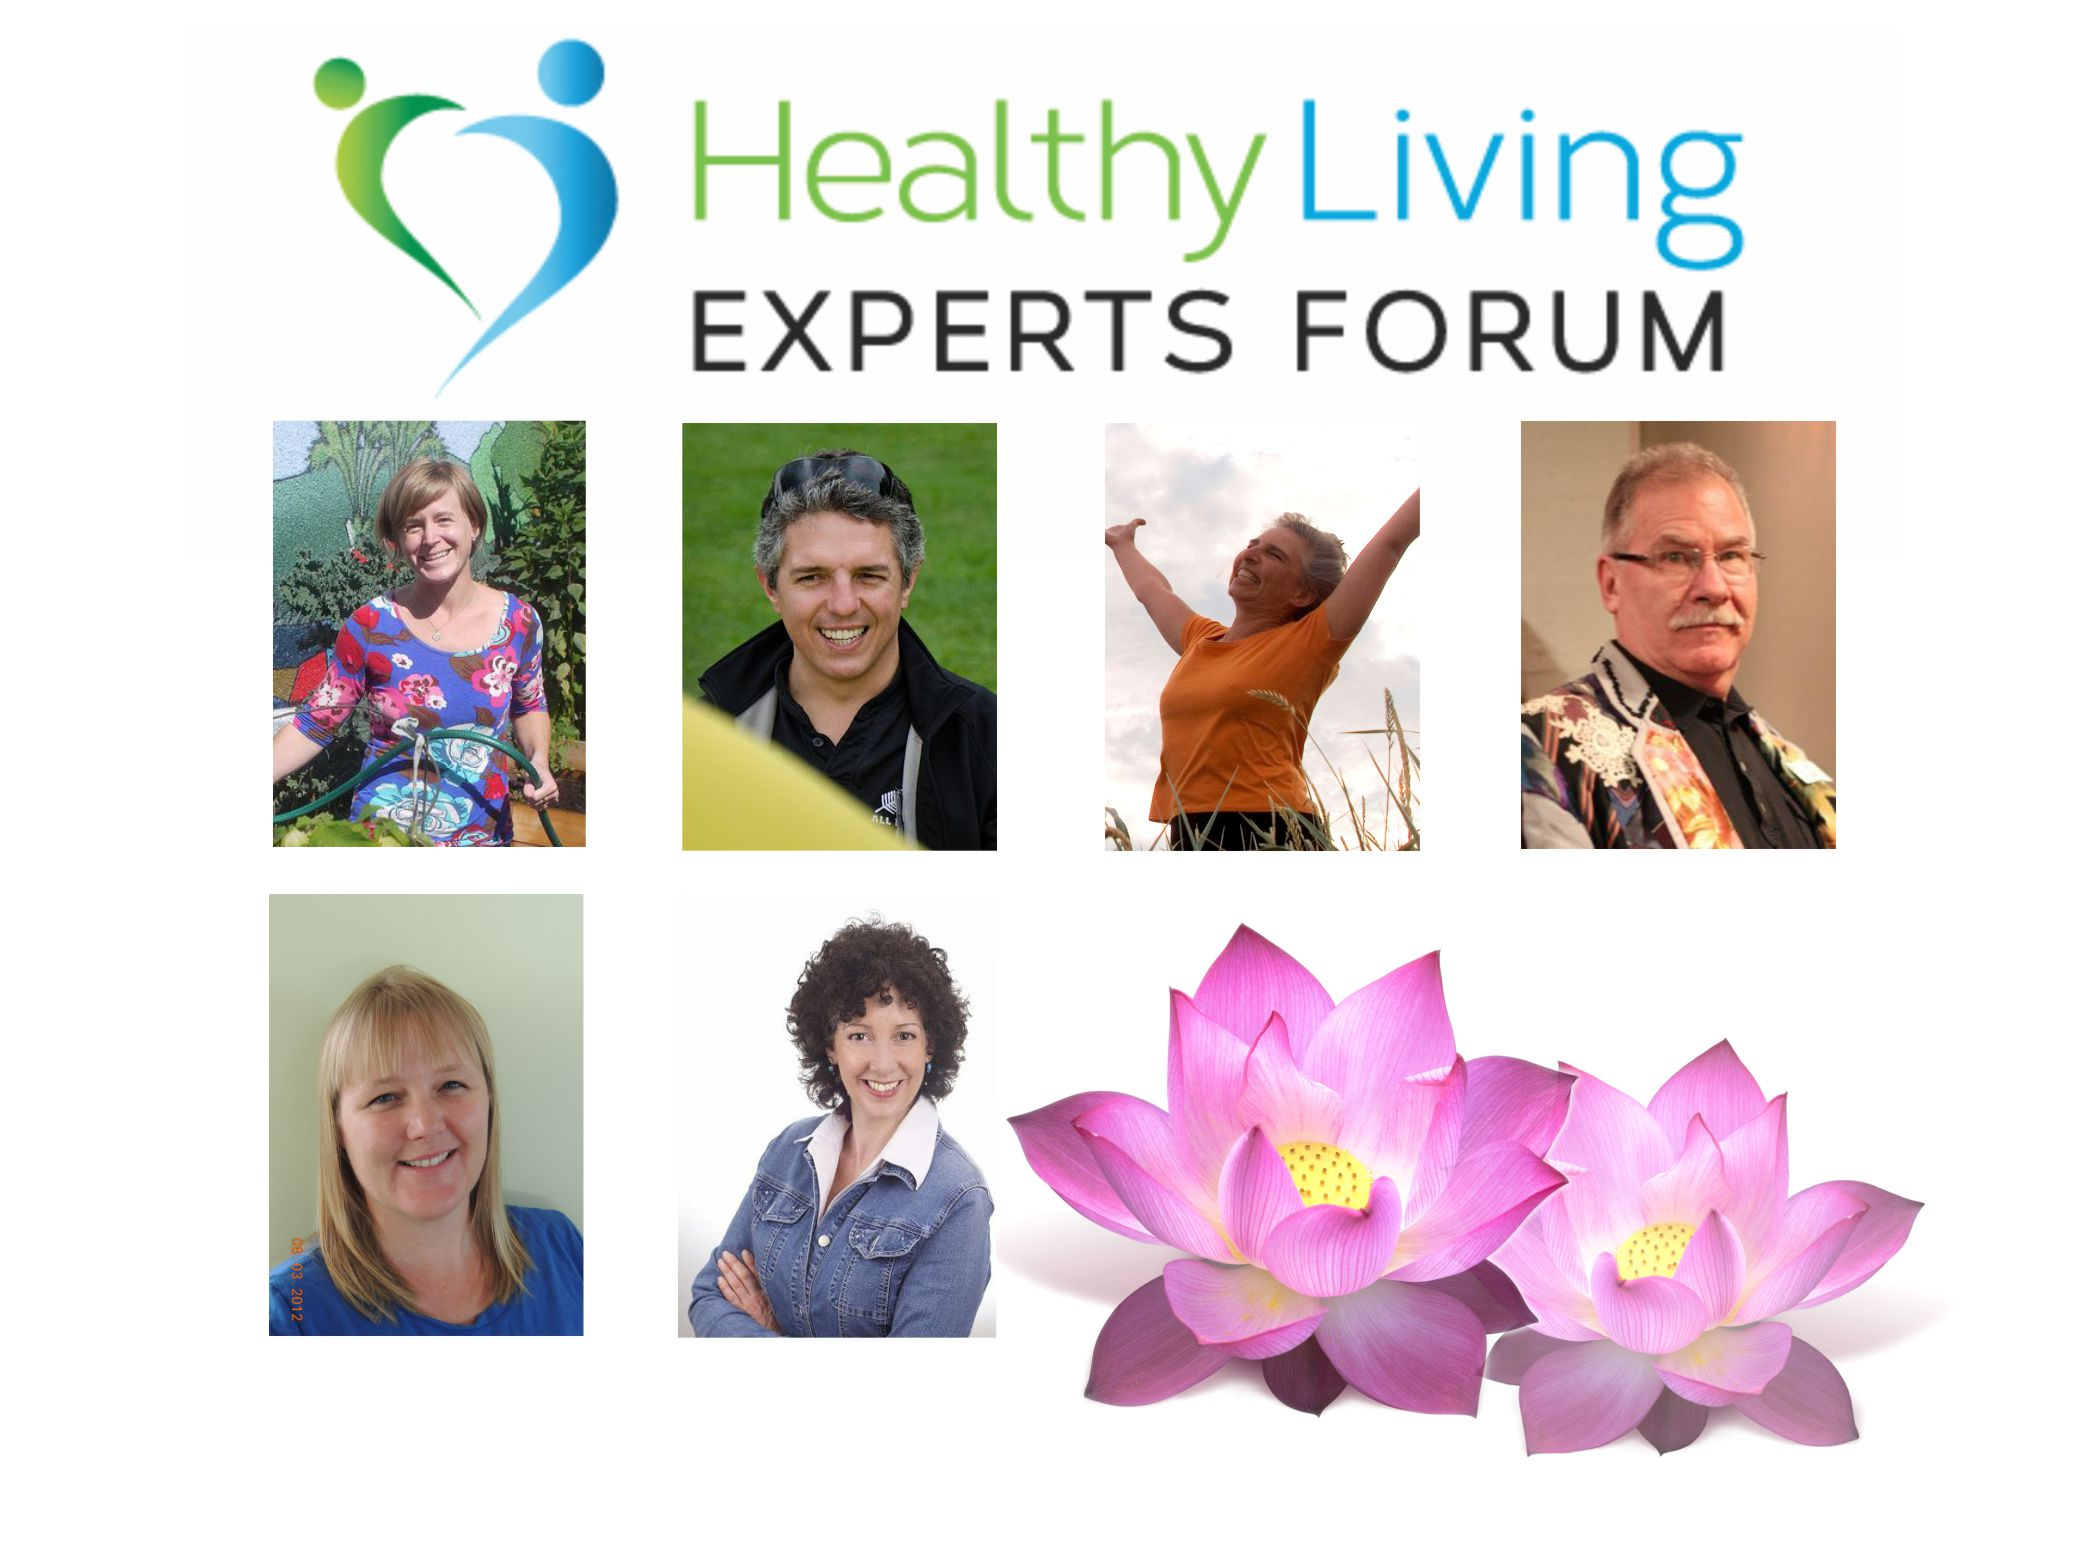 Healthy Living Experts Forum 2014,